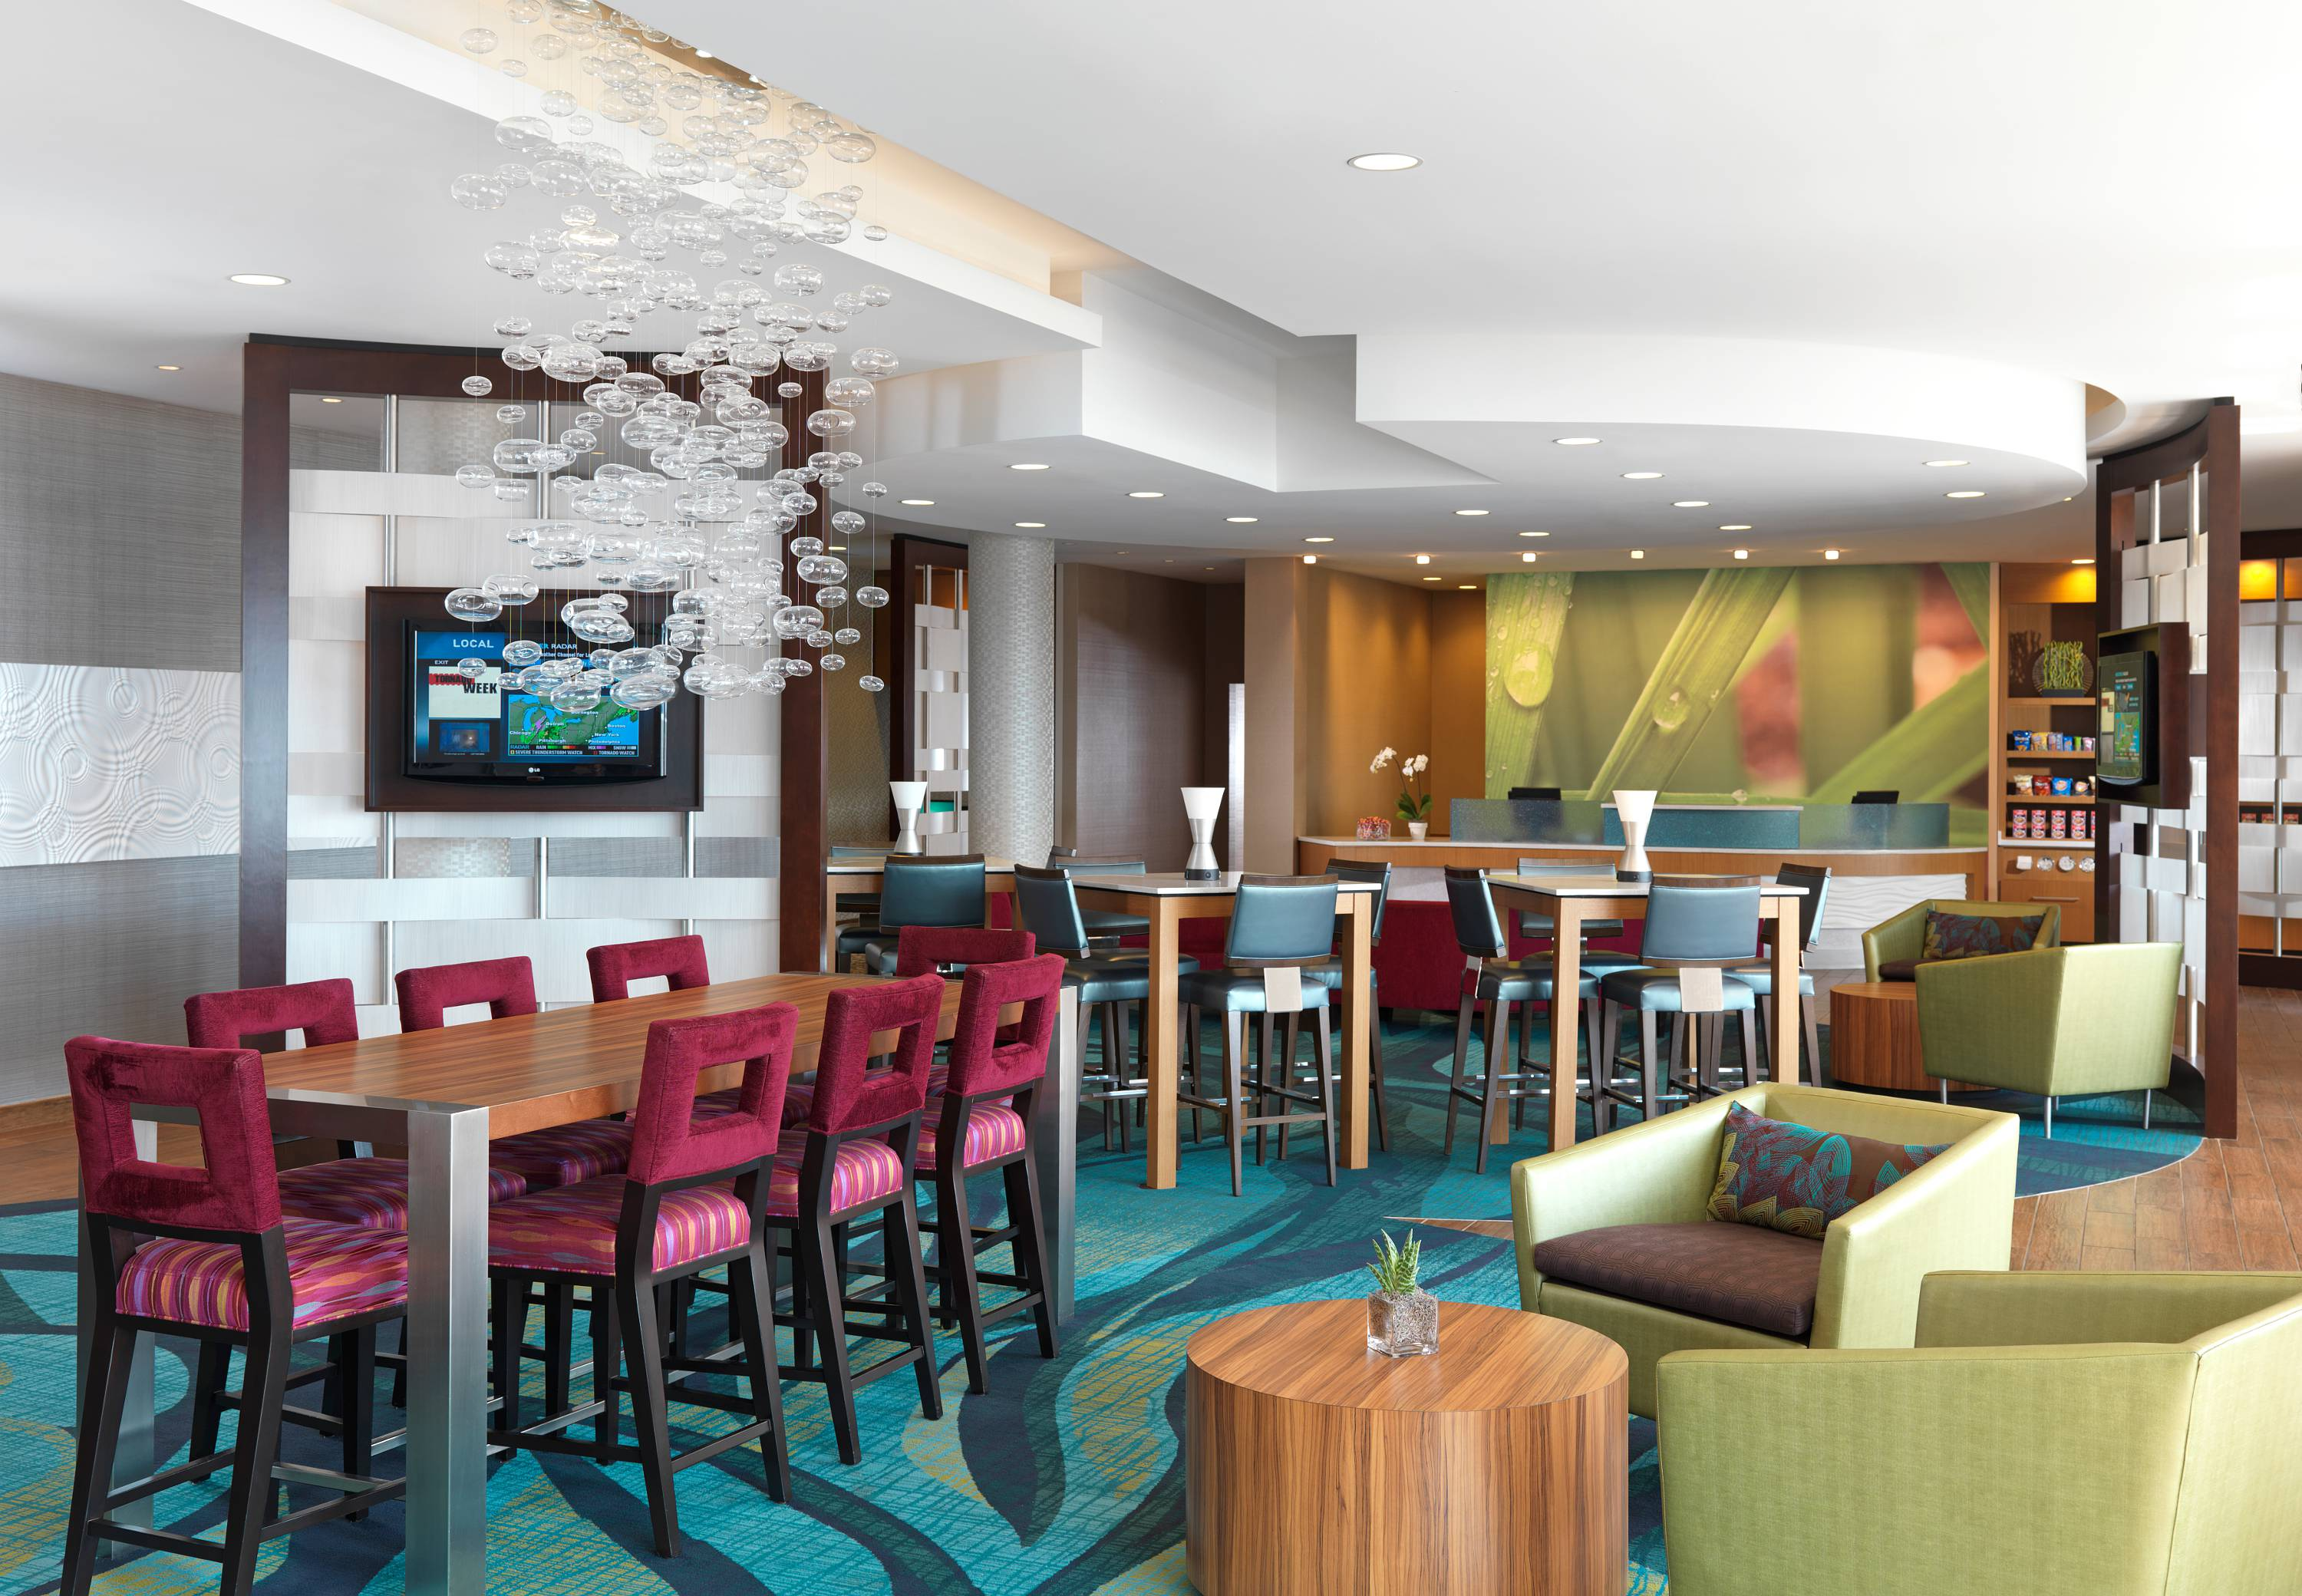 SpringHill Suites by Marriott Denver Tech Center image 2